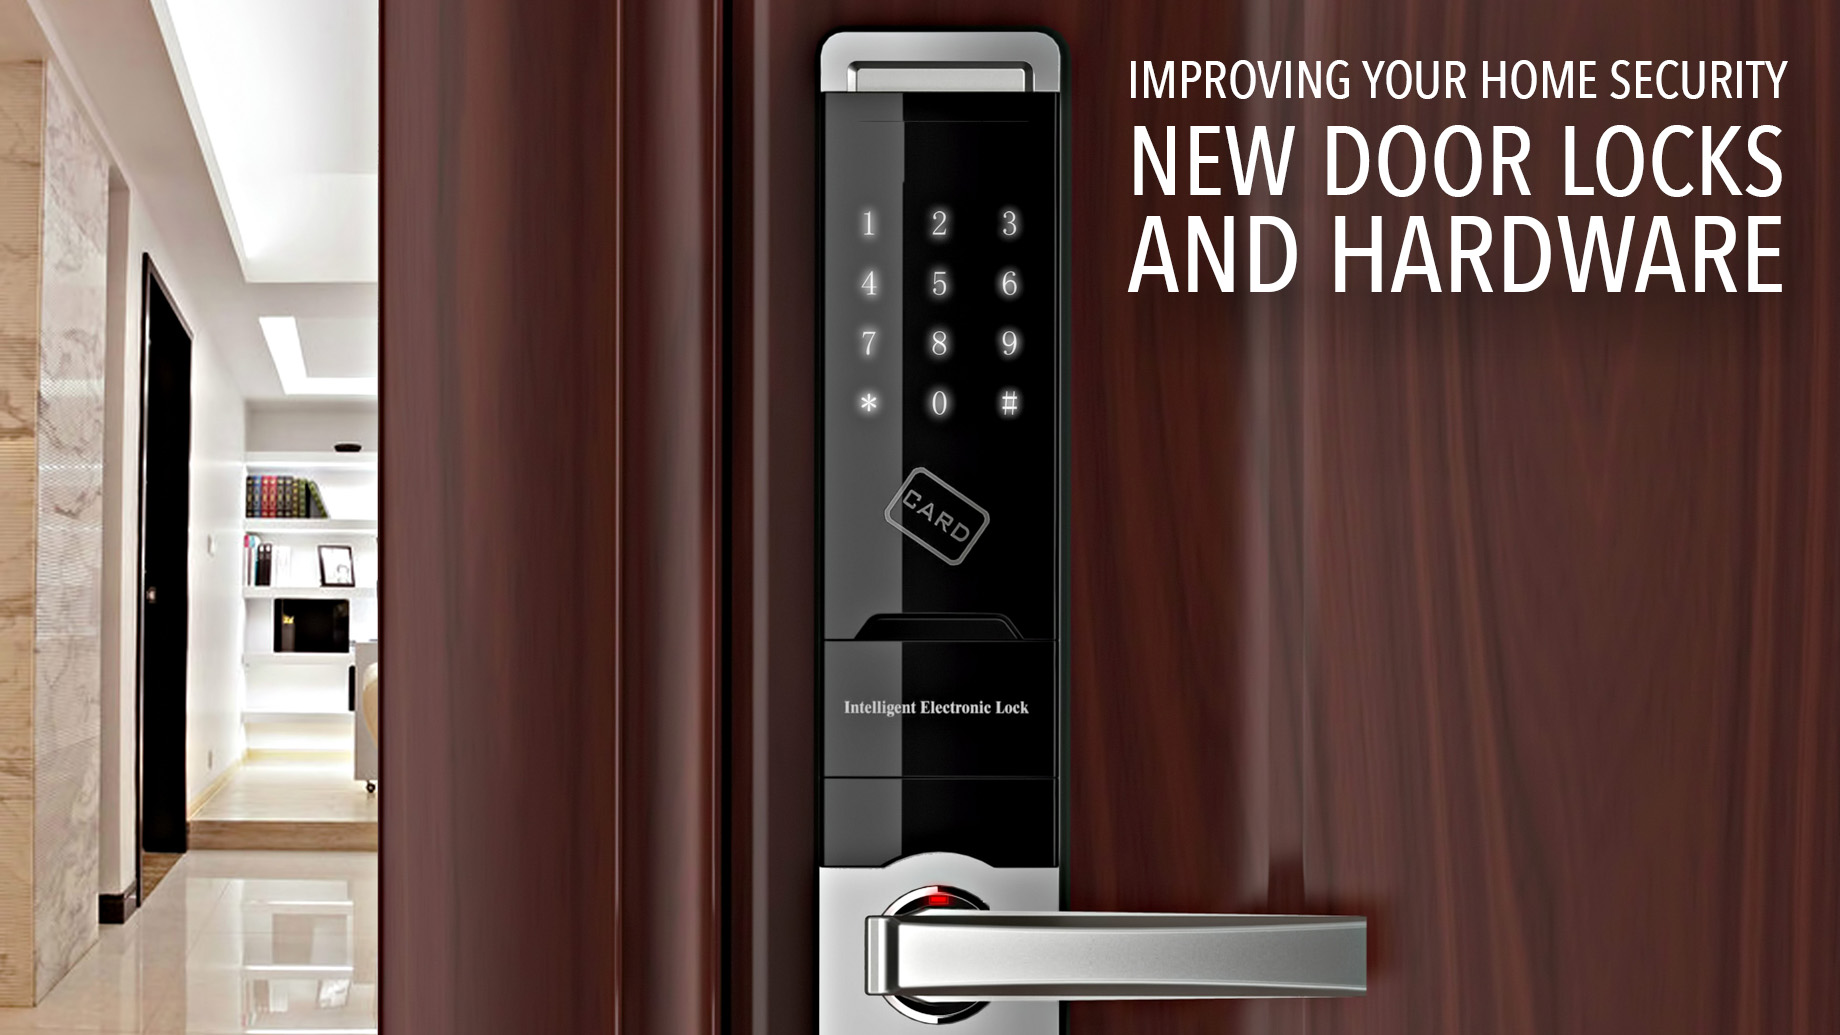 Key Tips on Improving Your Home Security with Door Security Hardware